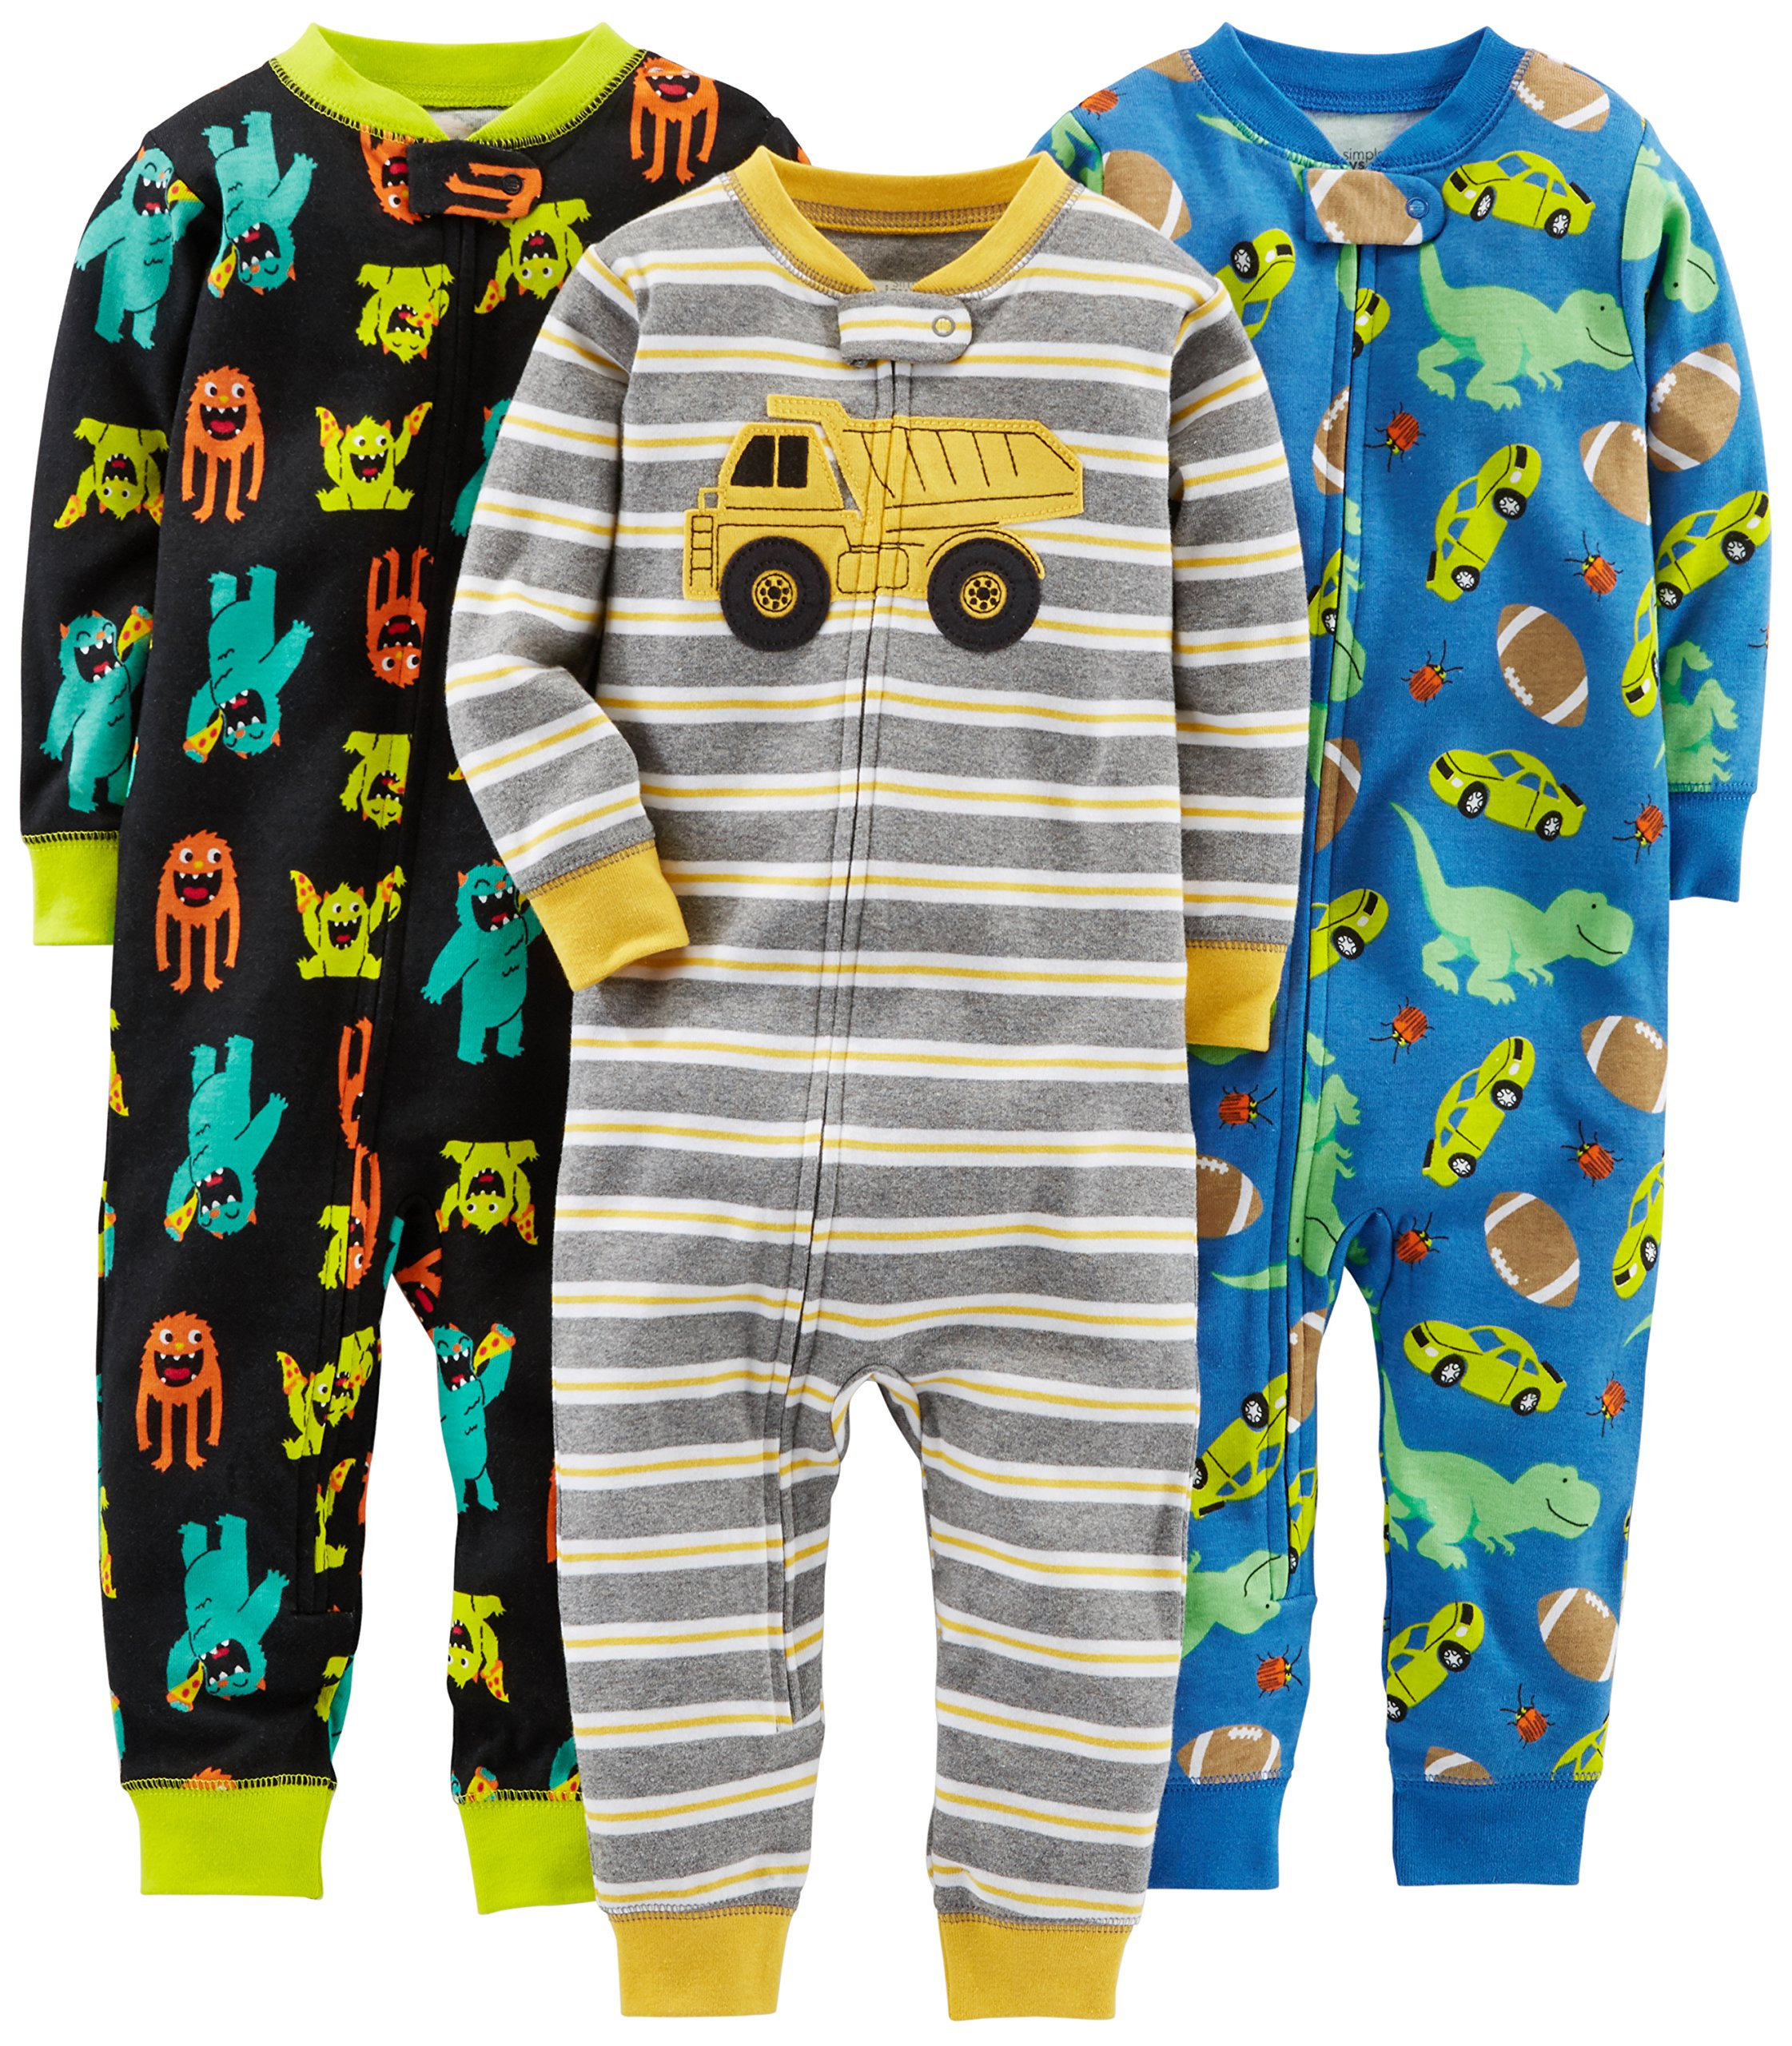 Simple Joys by Carter's Baby Boys' Toddler 3-Pack Snug Fit Footless Cotton Pajamas, Monsters/Dino/Construction, 3T